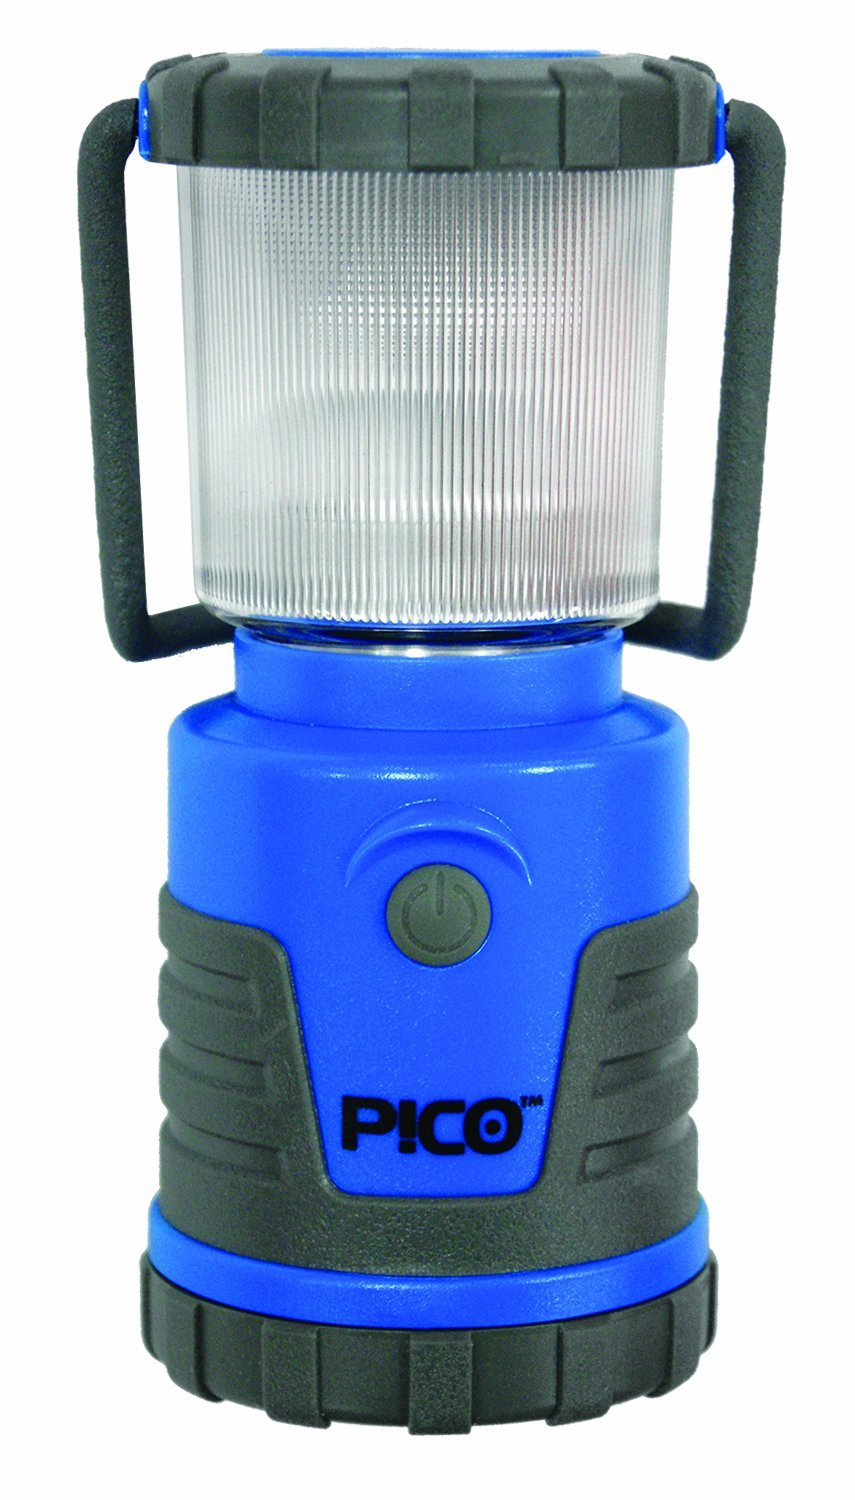 Ultimate Survival Technologies PICO Lantern - Available in Multiple Colors